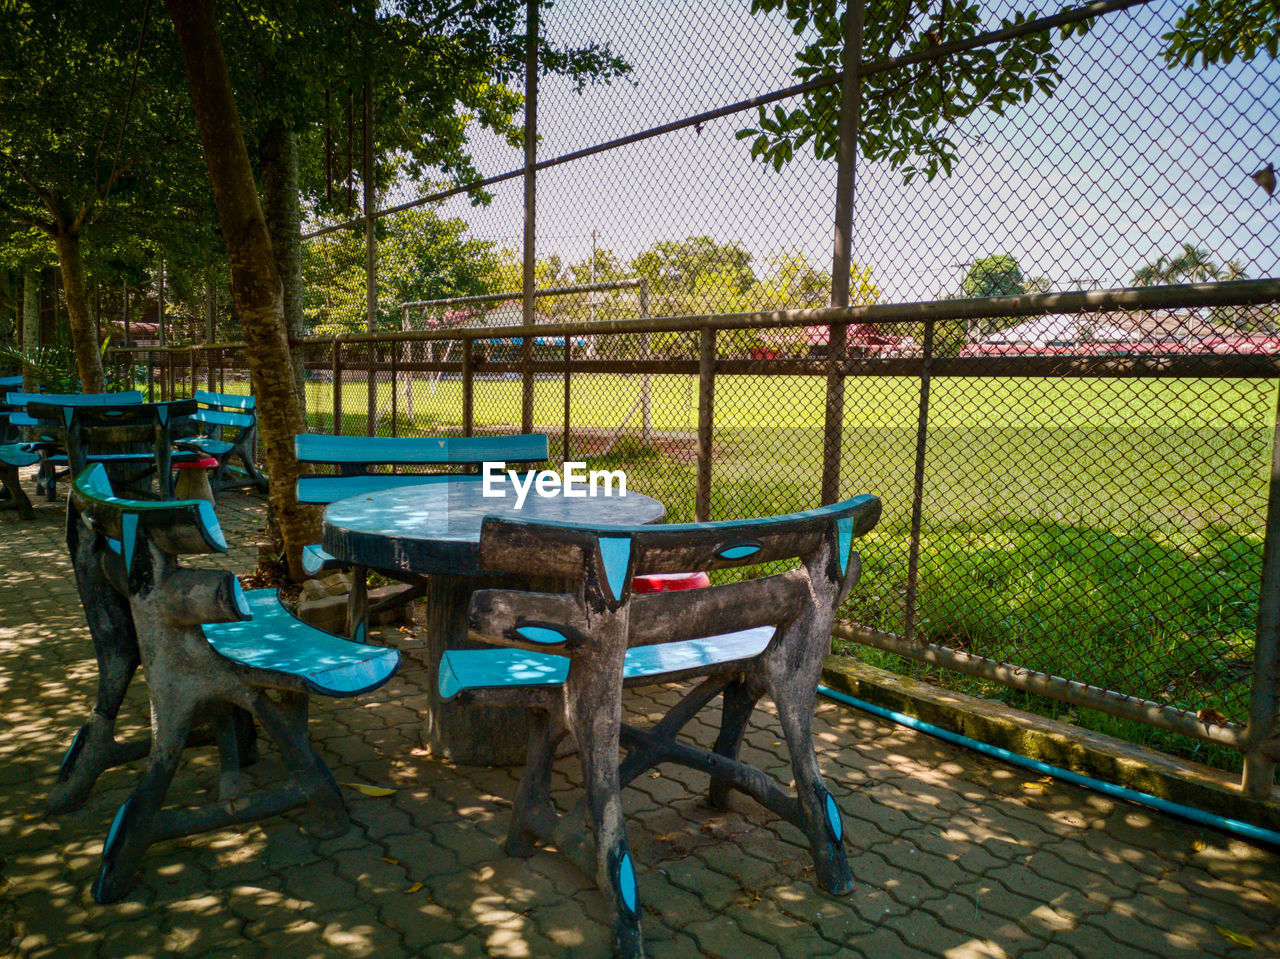 EMPTY CHAIRS AND TABLE AT PARK